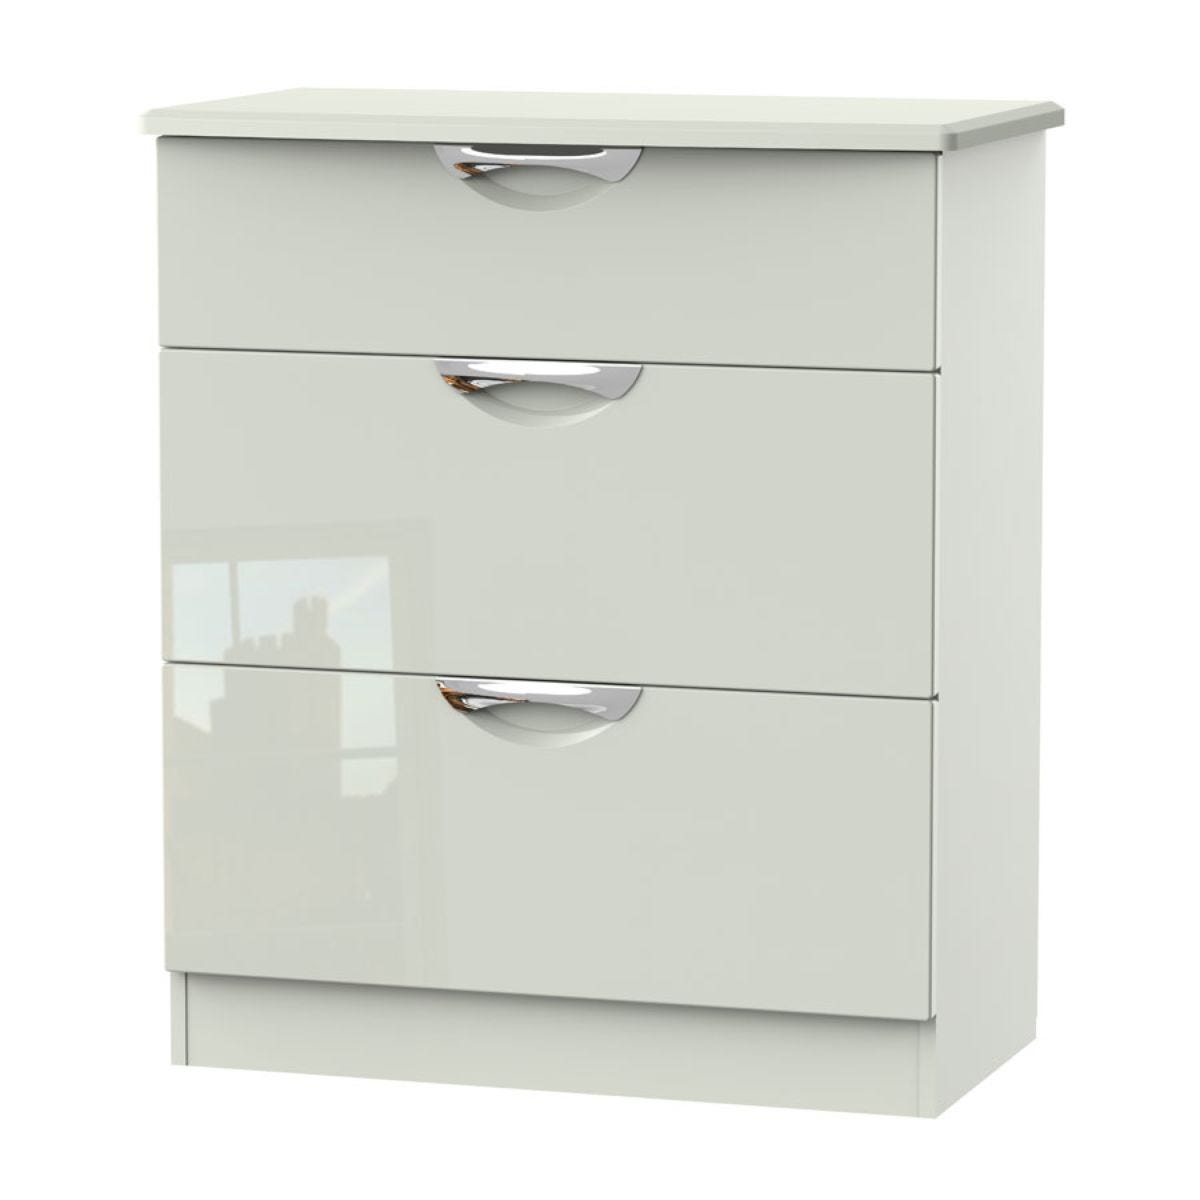 Indices 3-Drawer Chest of Drawers - White/Grey